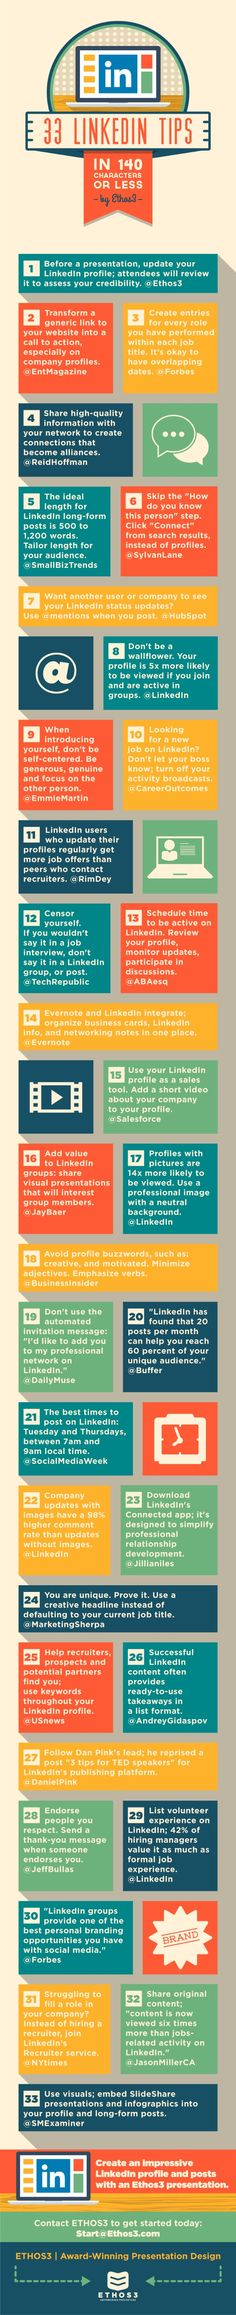 33 #LinkedIn Tips, in 140 characters or less